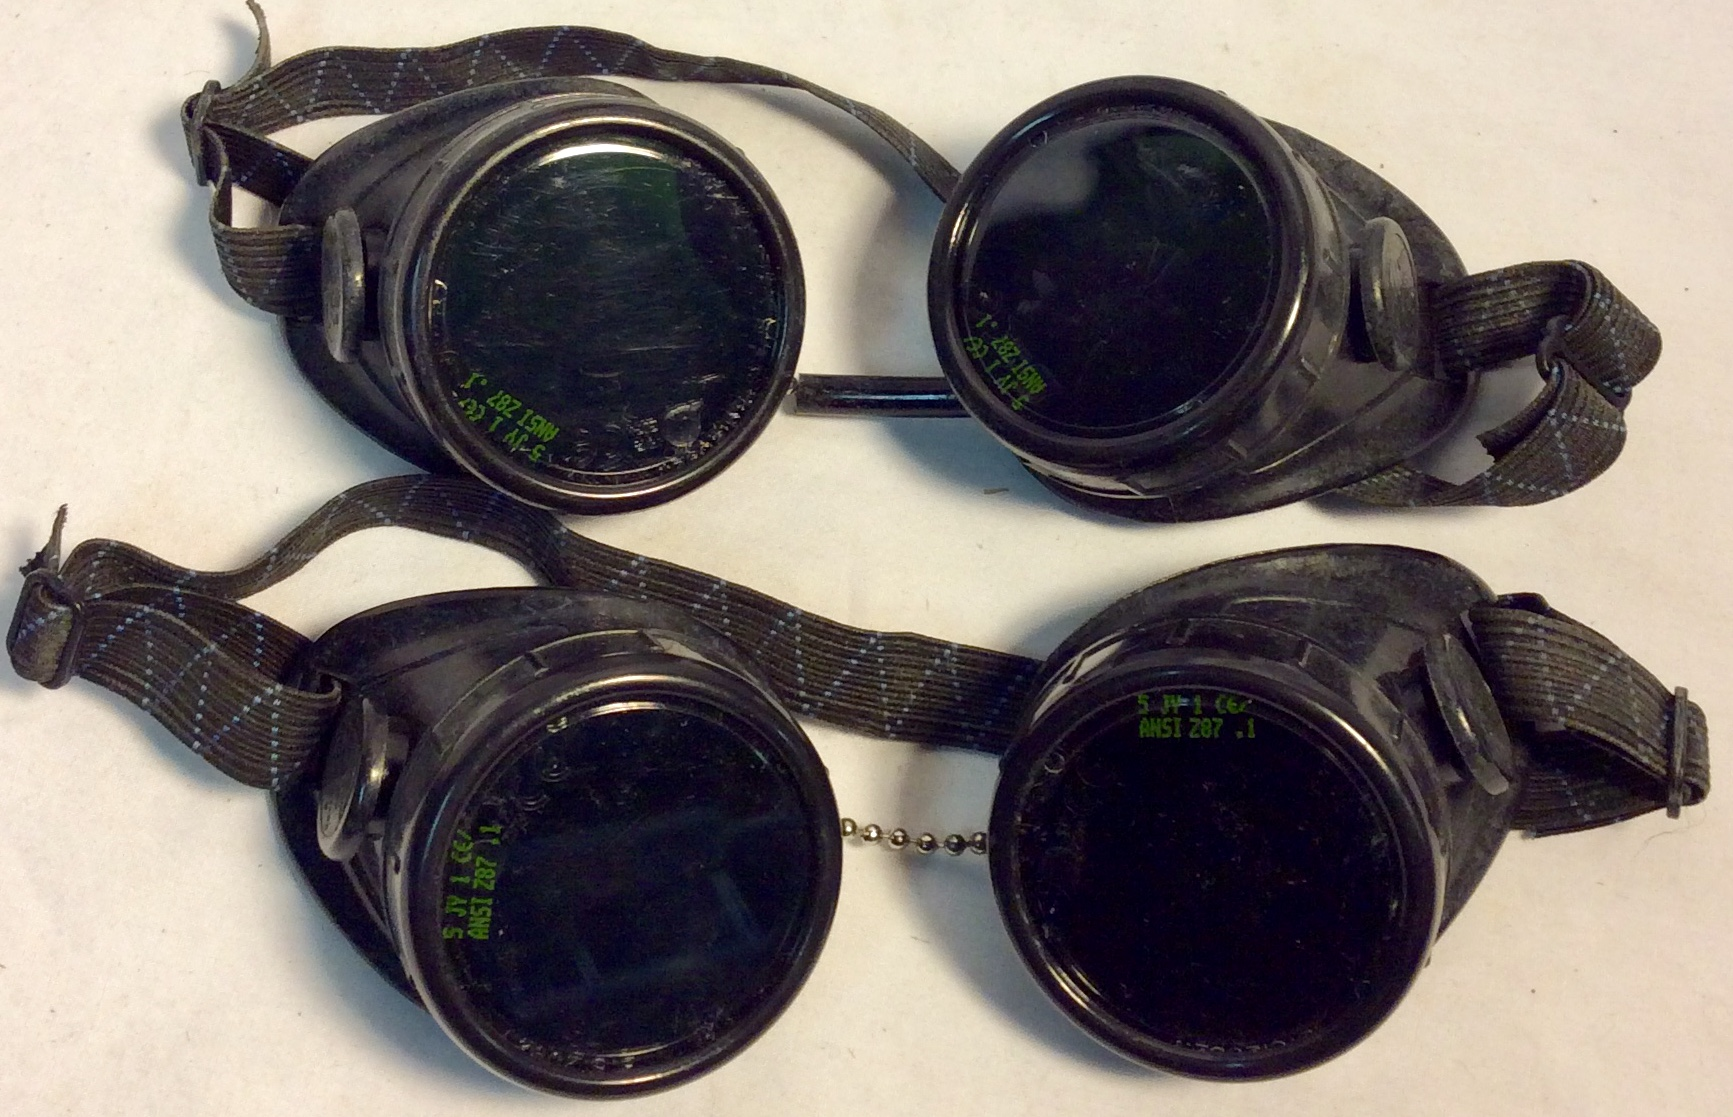 Welders safety goggles with dark green lenses